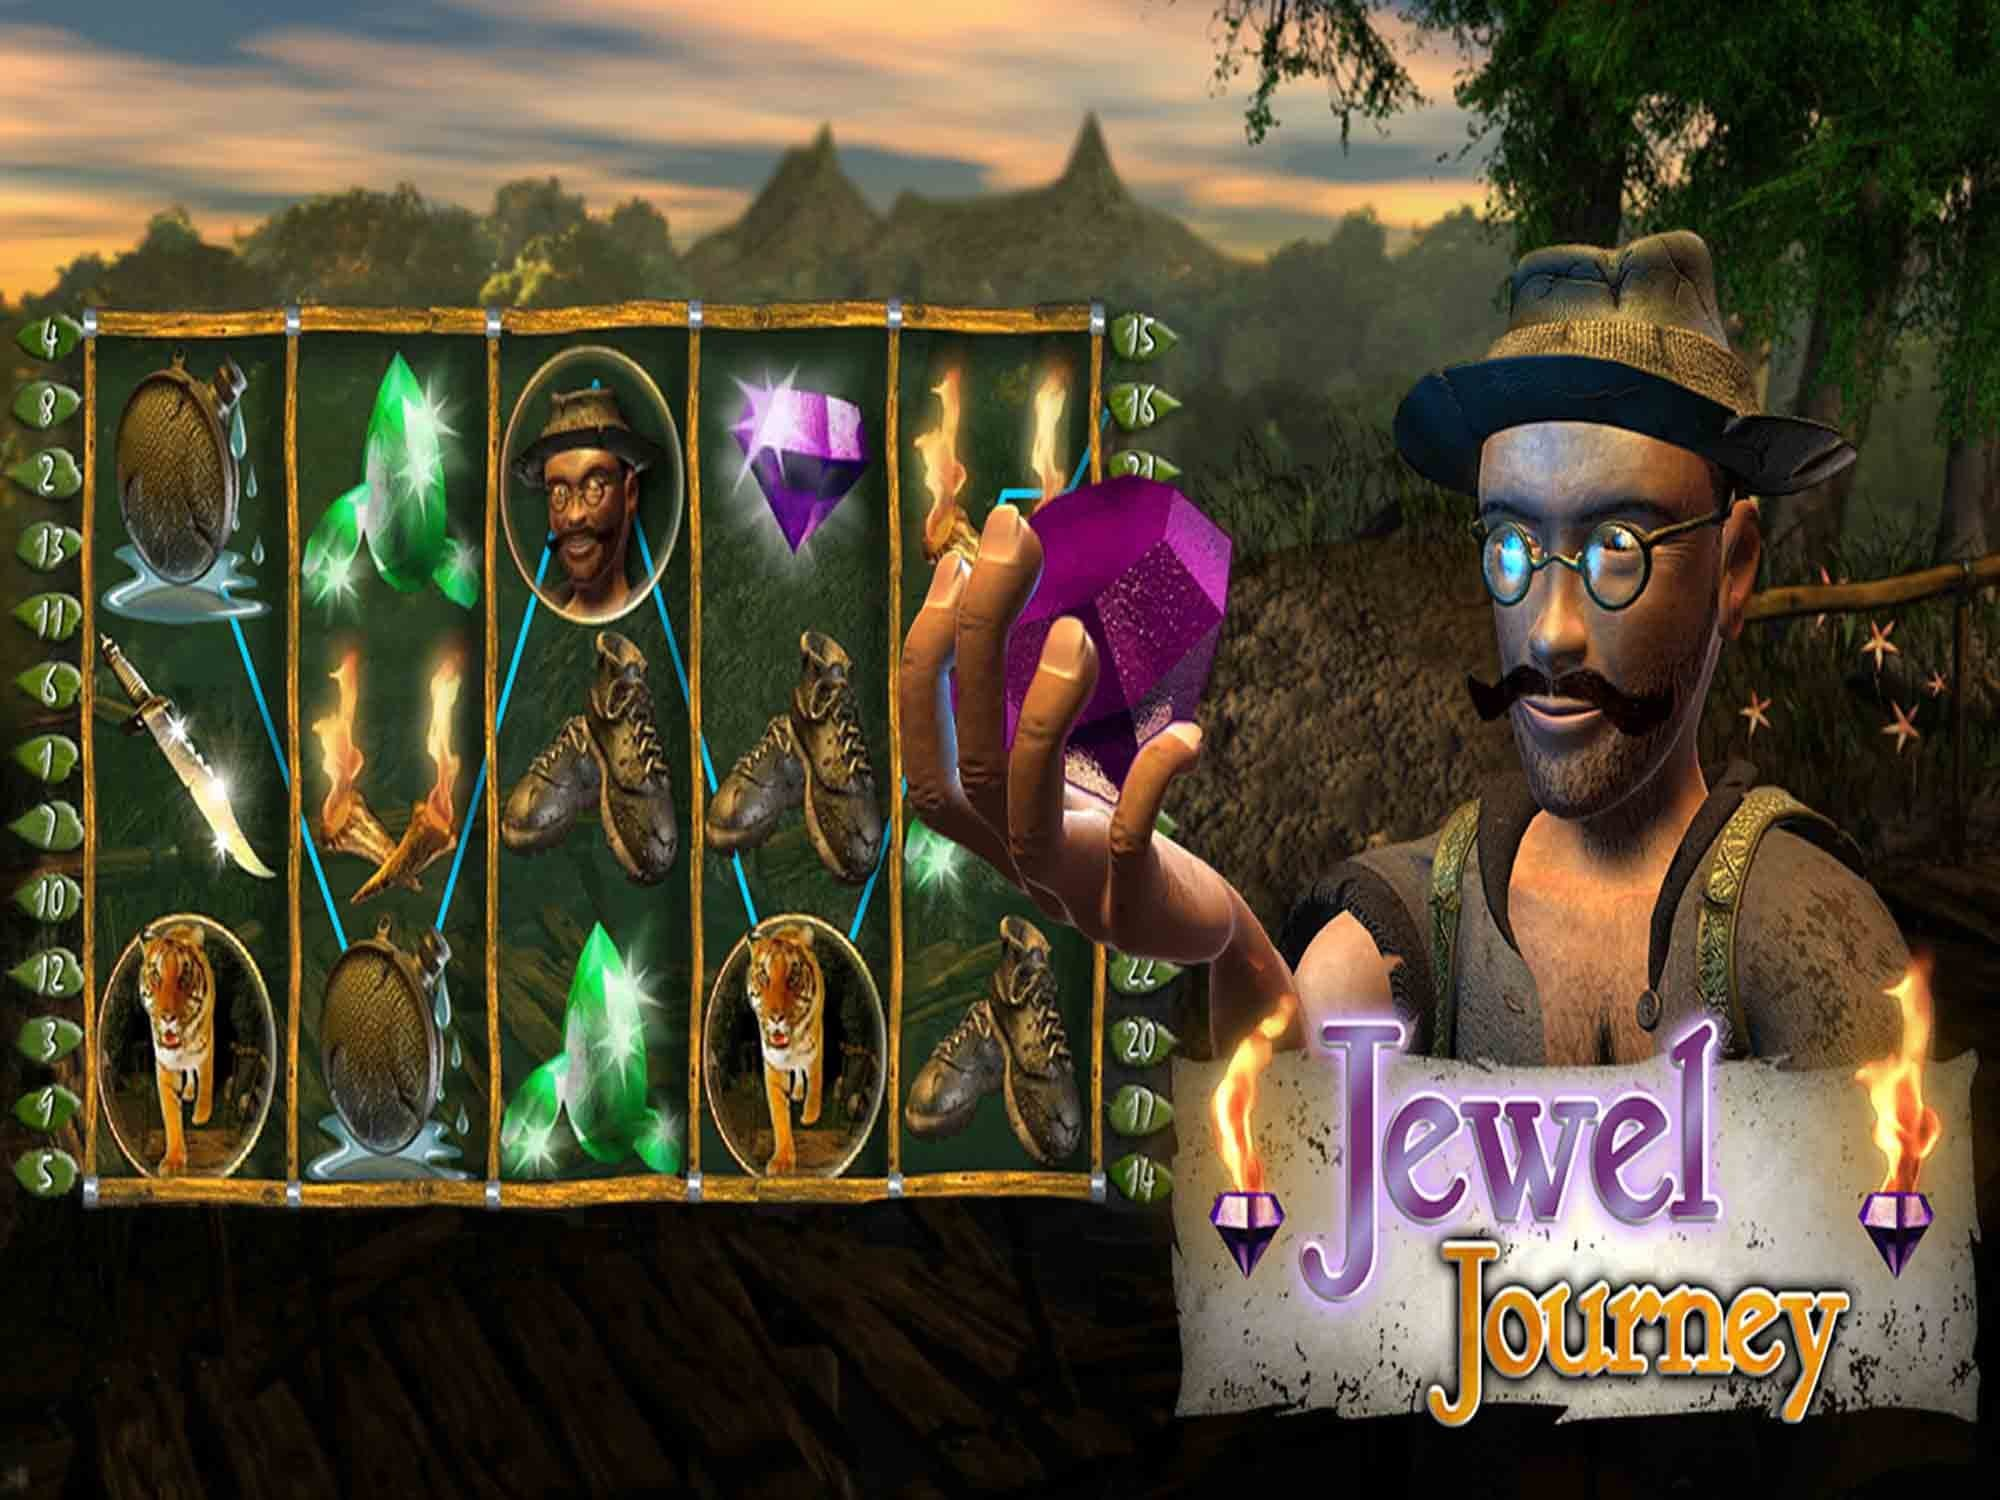 Jewel Journey Slot Casino Game